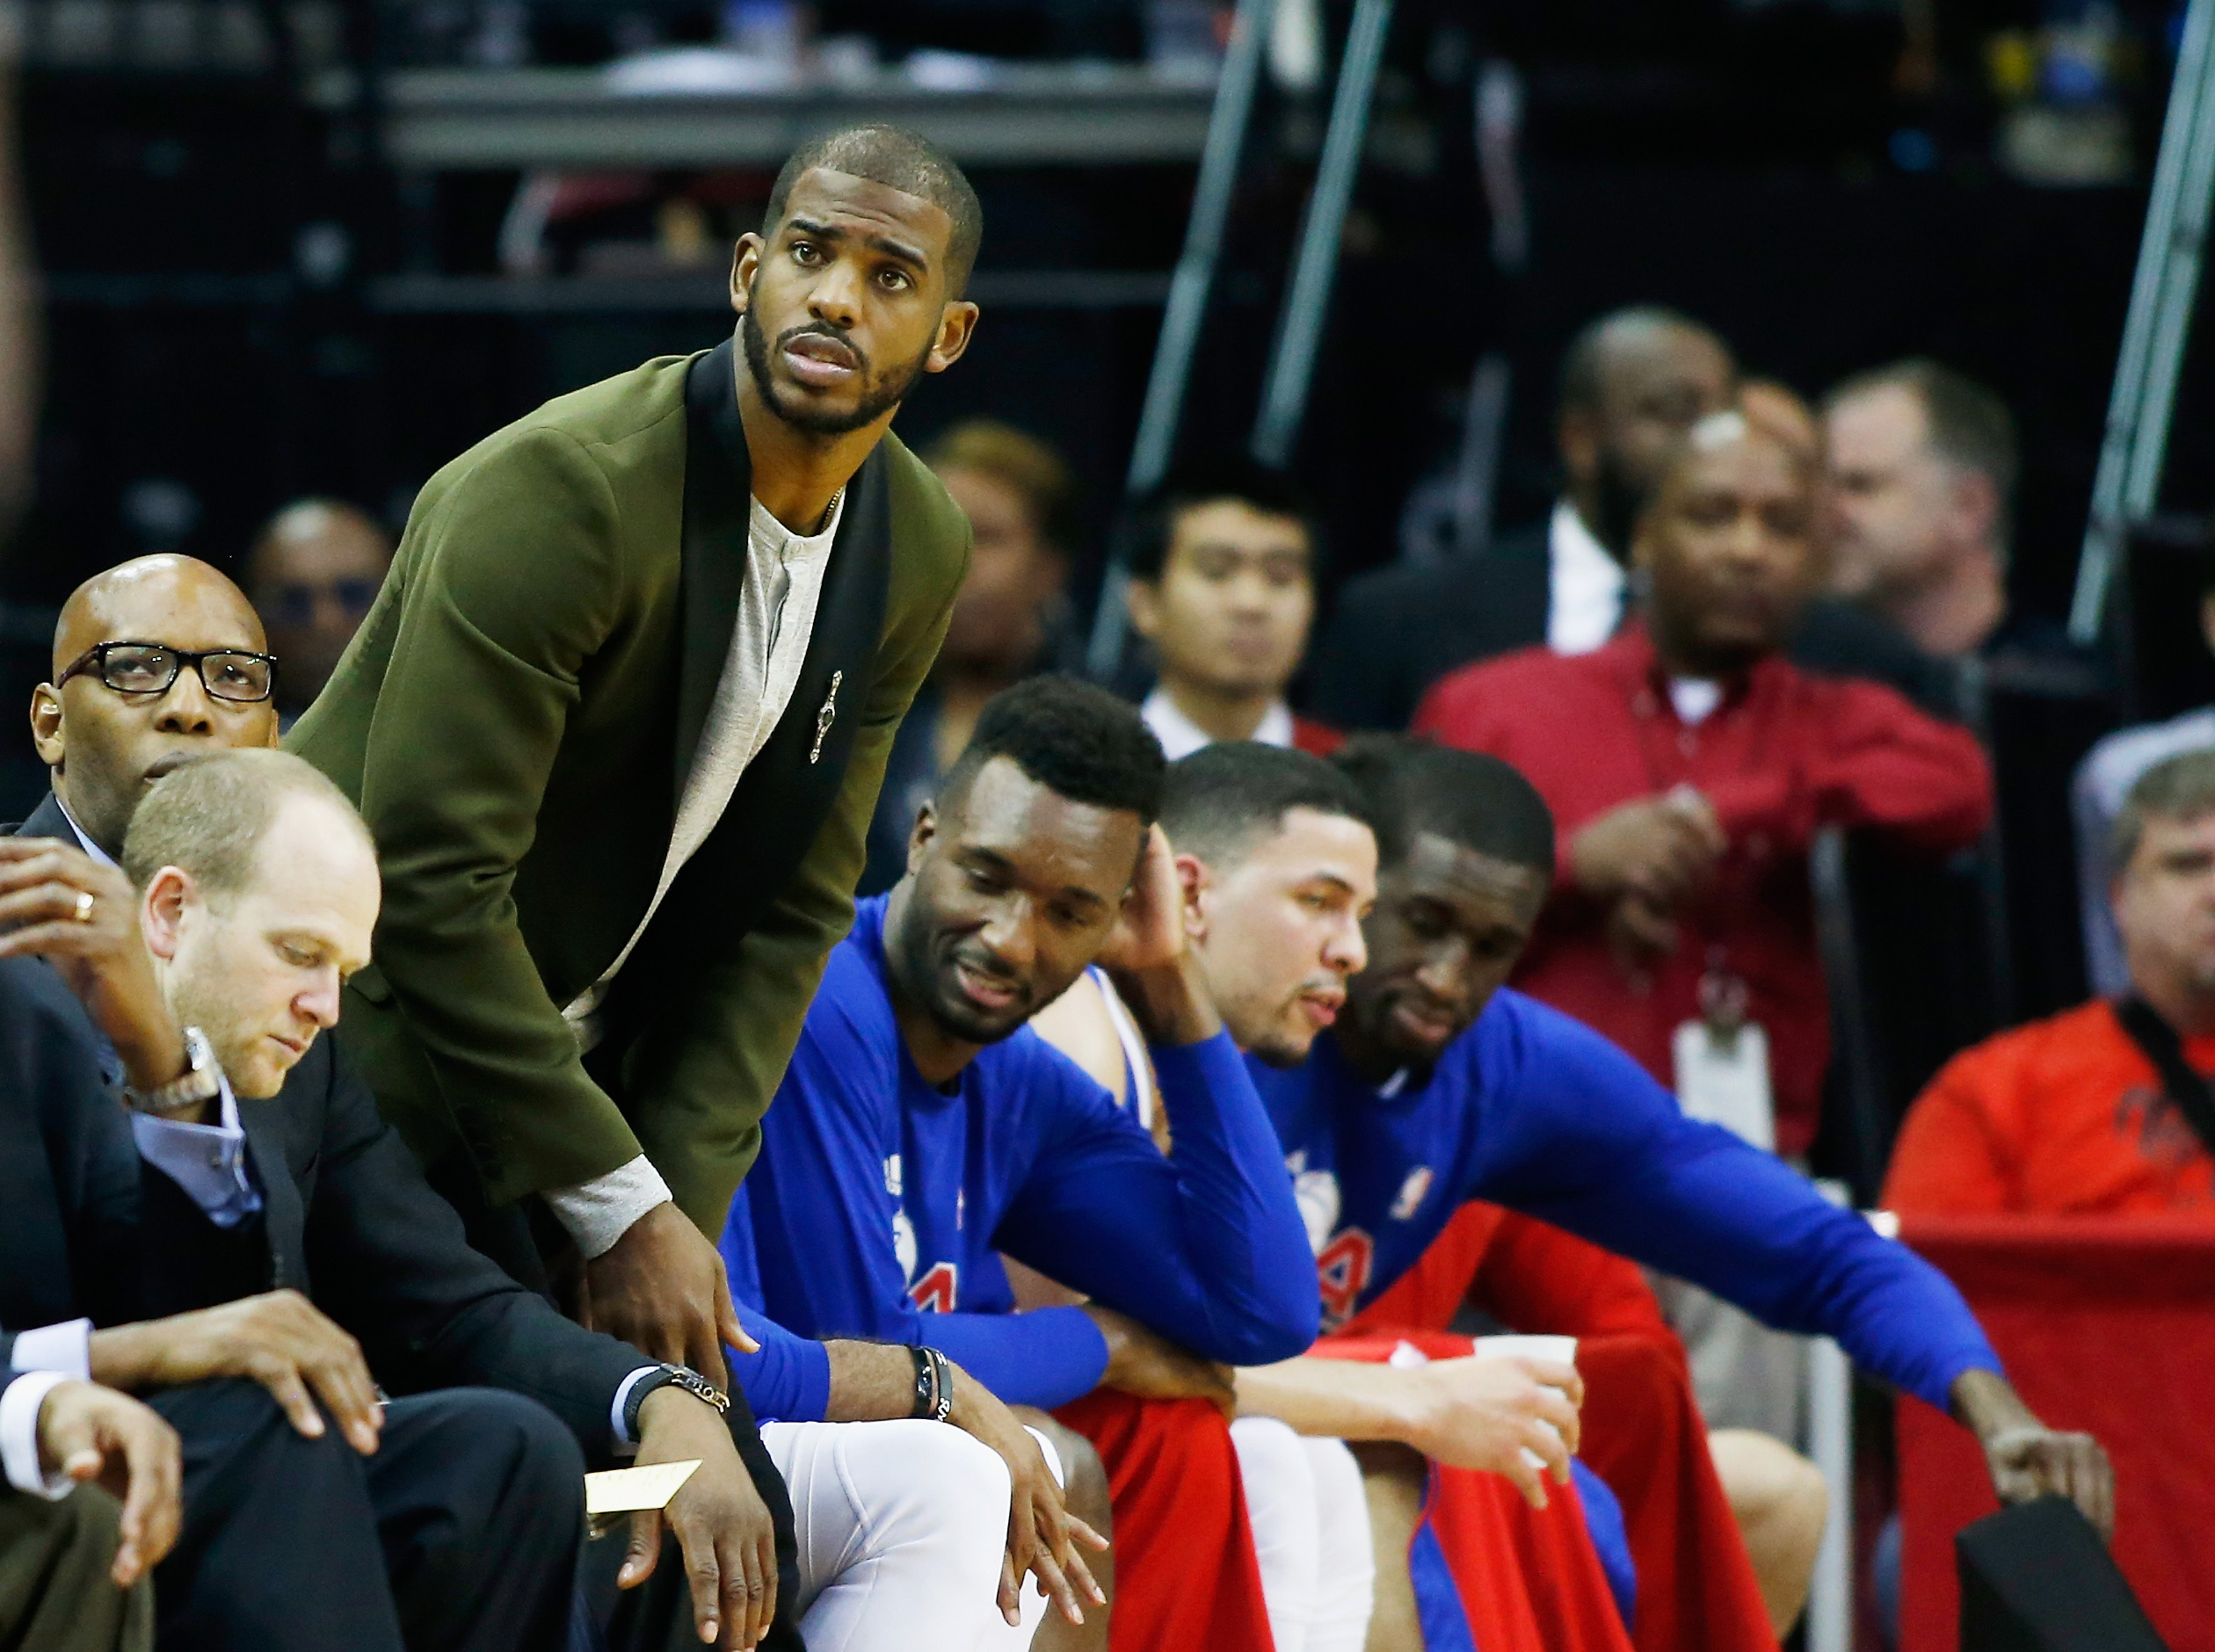 HOUSTON, TX - MAY 04:  Chris Paul #3 of the Los Angeles Clippers stands near the bench late in their game against the Houston Rockets during Game One in the Western Conference Semifinals of the 2015 NBA Playoffs on May 4, 2015 at the Toyota Center in Hous